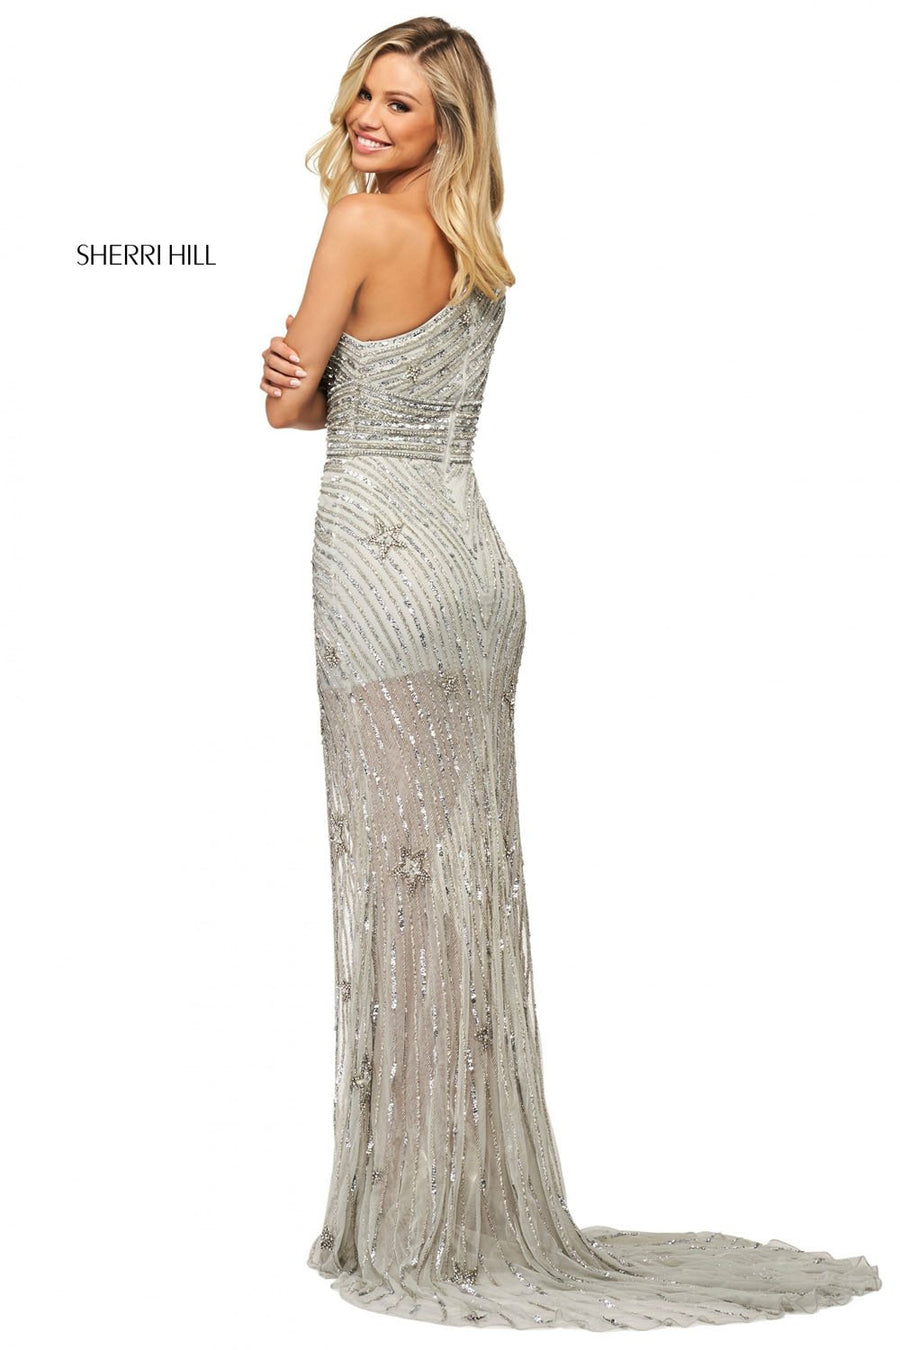 Sherri Hill 53784 prom dress images.  Sherri Hill 53784 is available in these colors: Silver, Gold Silver, Light Blue Silver.